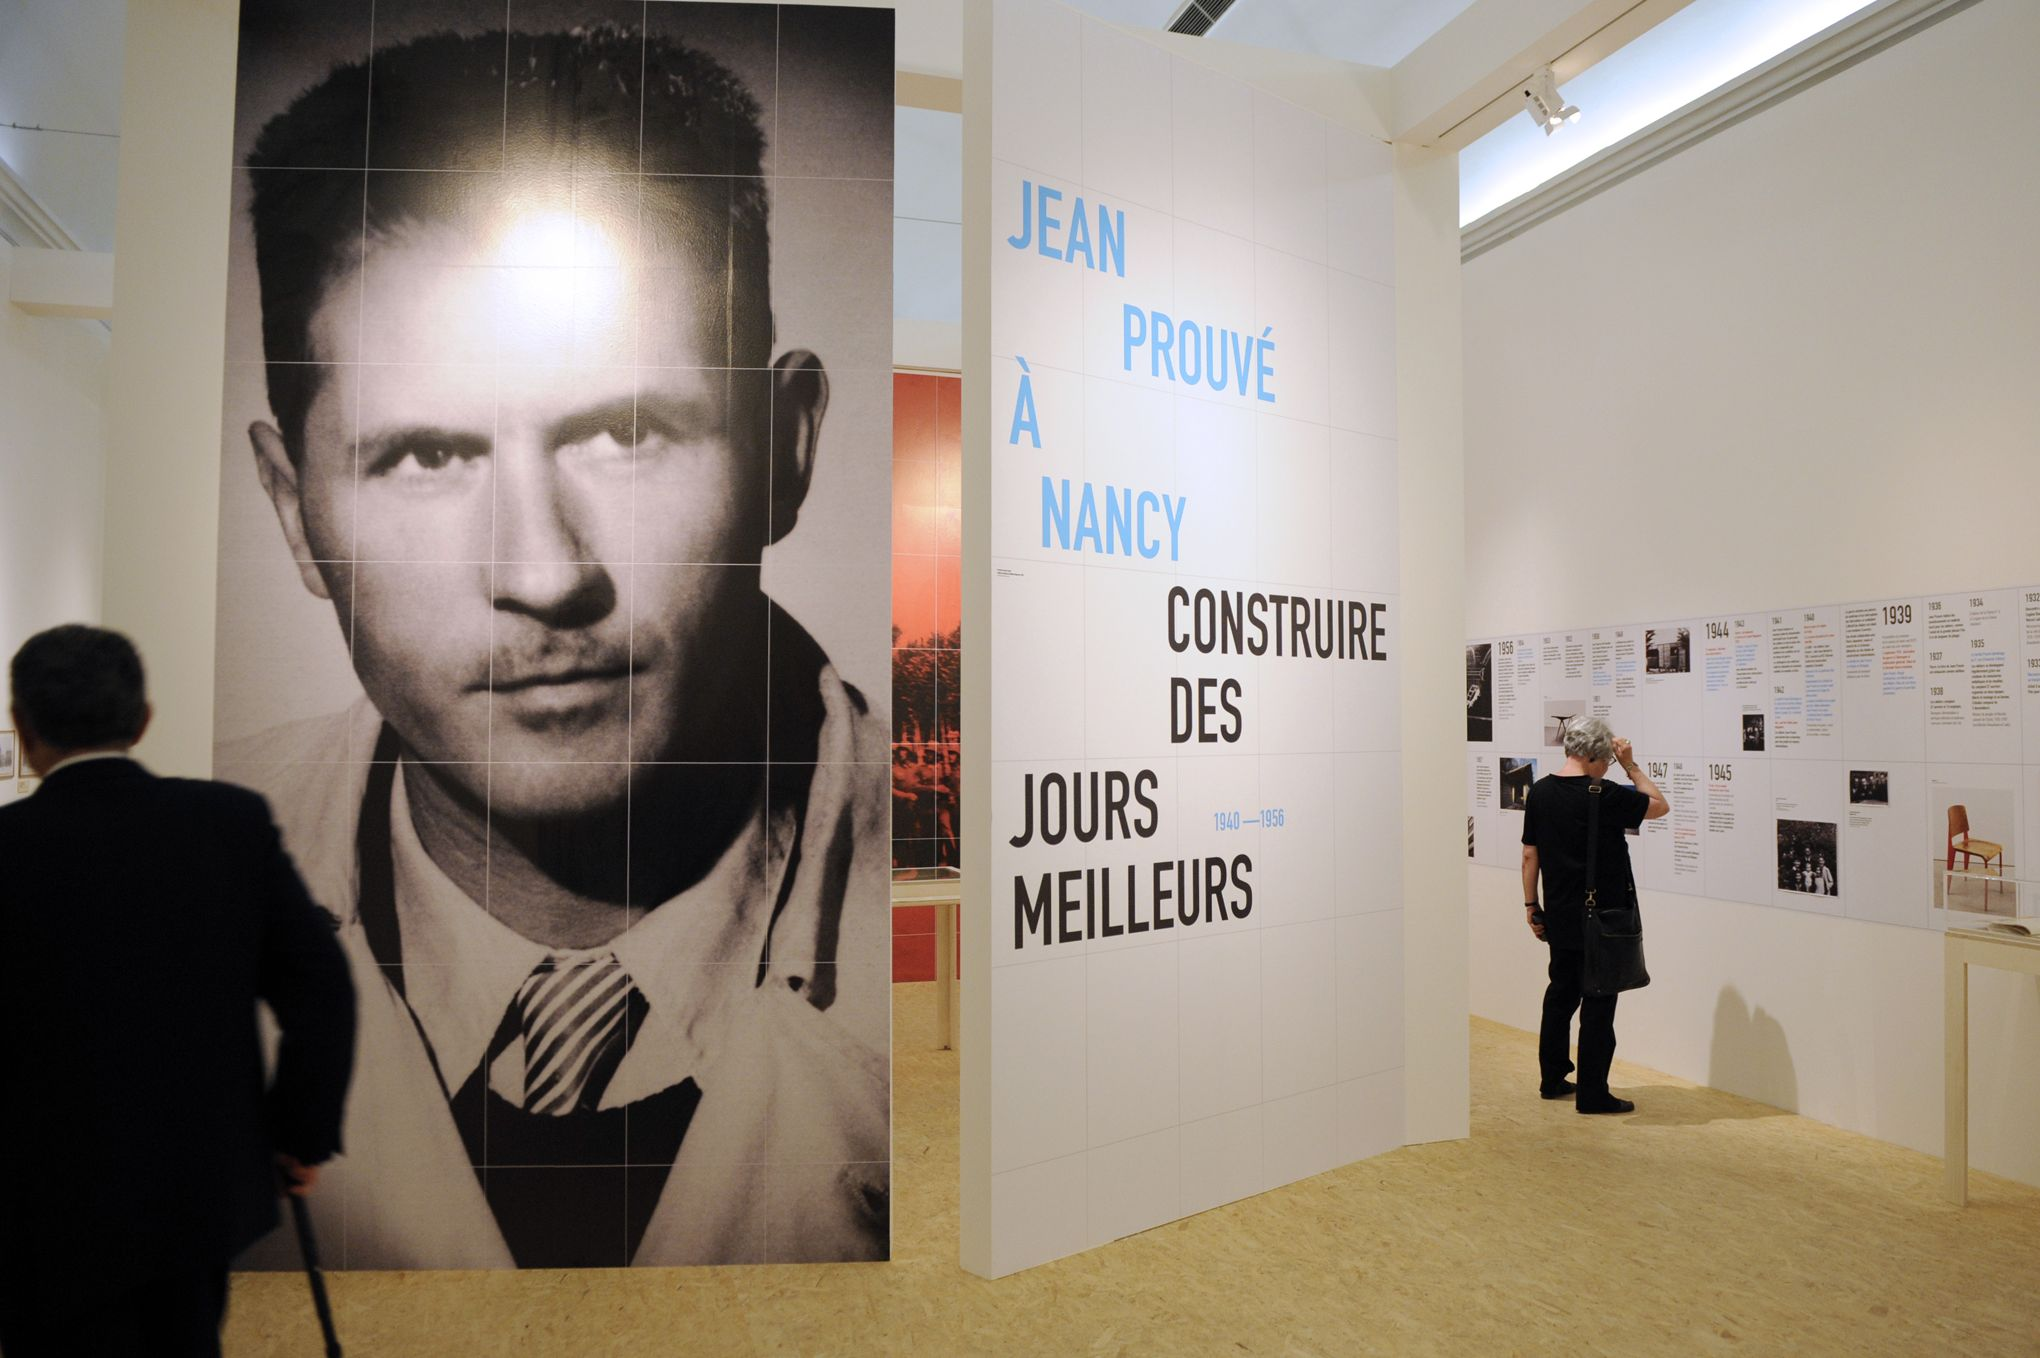 TO GO WITH AFP STORY BY PAUL AUBRIAT People visit a temporary exhibition dedicated to the French architect and designer Jean Prouve at the  Musee Lorrain of the French northeastern city of Nancy, on July 4, 2012. The city of Nancy pay tribute to Jean Prouve in 2012, organizing a series of permanent and temporary exhibitions. AFP PHOTO / JEAN-CHRISTOPHE VERHAEGEN